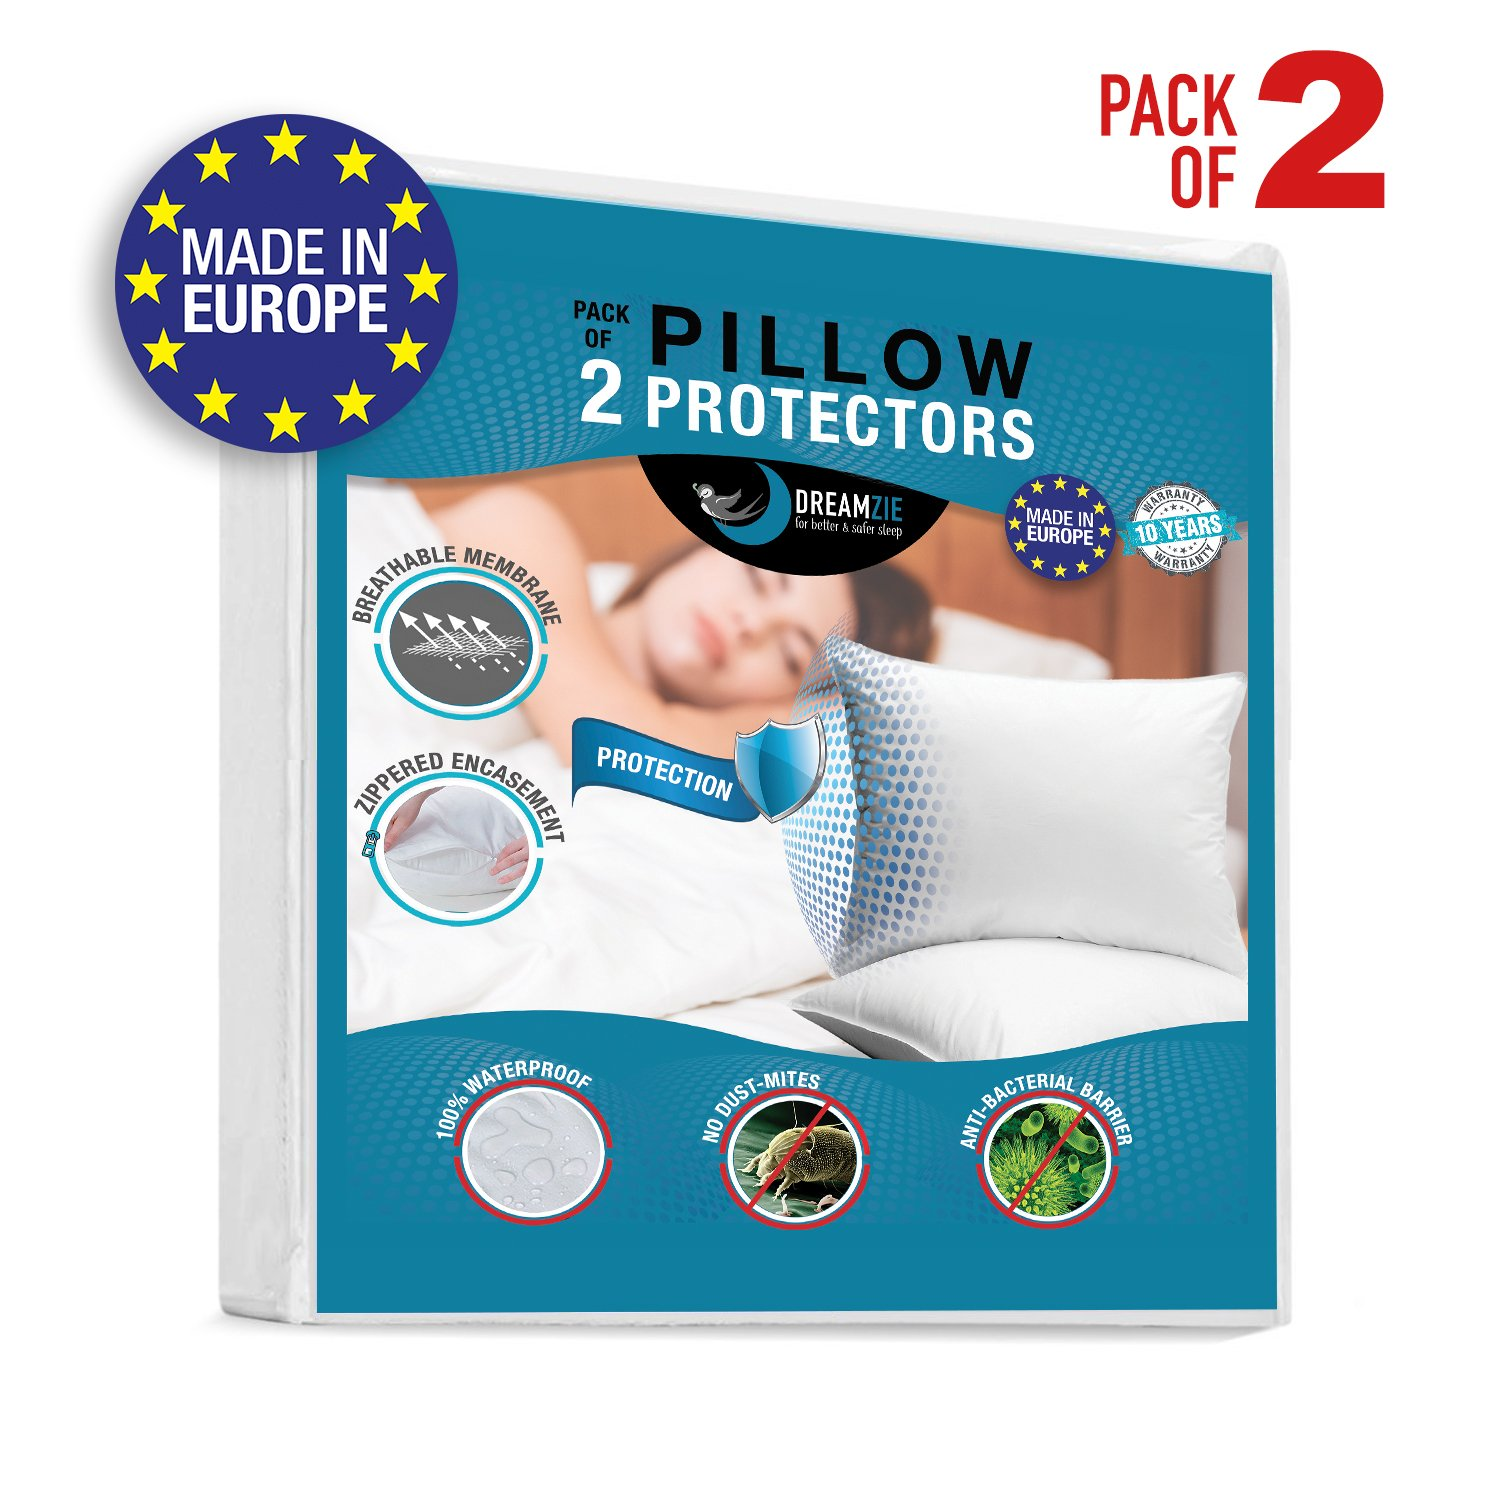 Dreamzie 2x Waterproof Pillow Covers (30 x 50 cm) Breathable, Hypoallergenic, Anti-Dust Mite, Anti-Bacterial Pillow Protect - New Generation BiOme Treatment with OEKO-TEX 100 and 10 Year Warranty BMS International